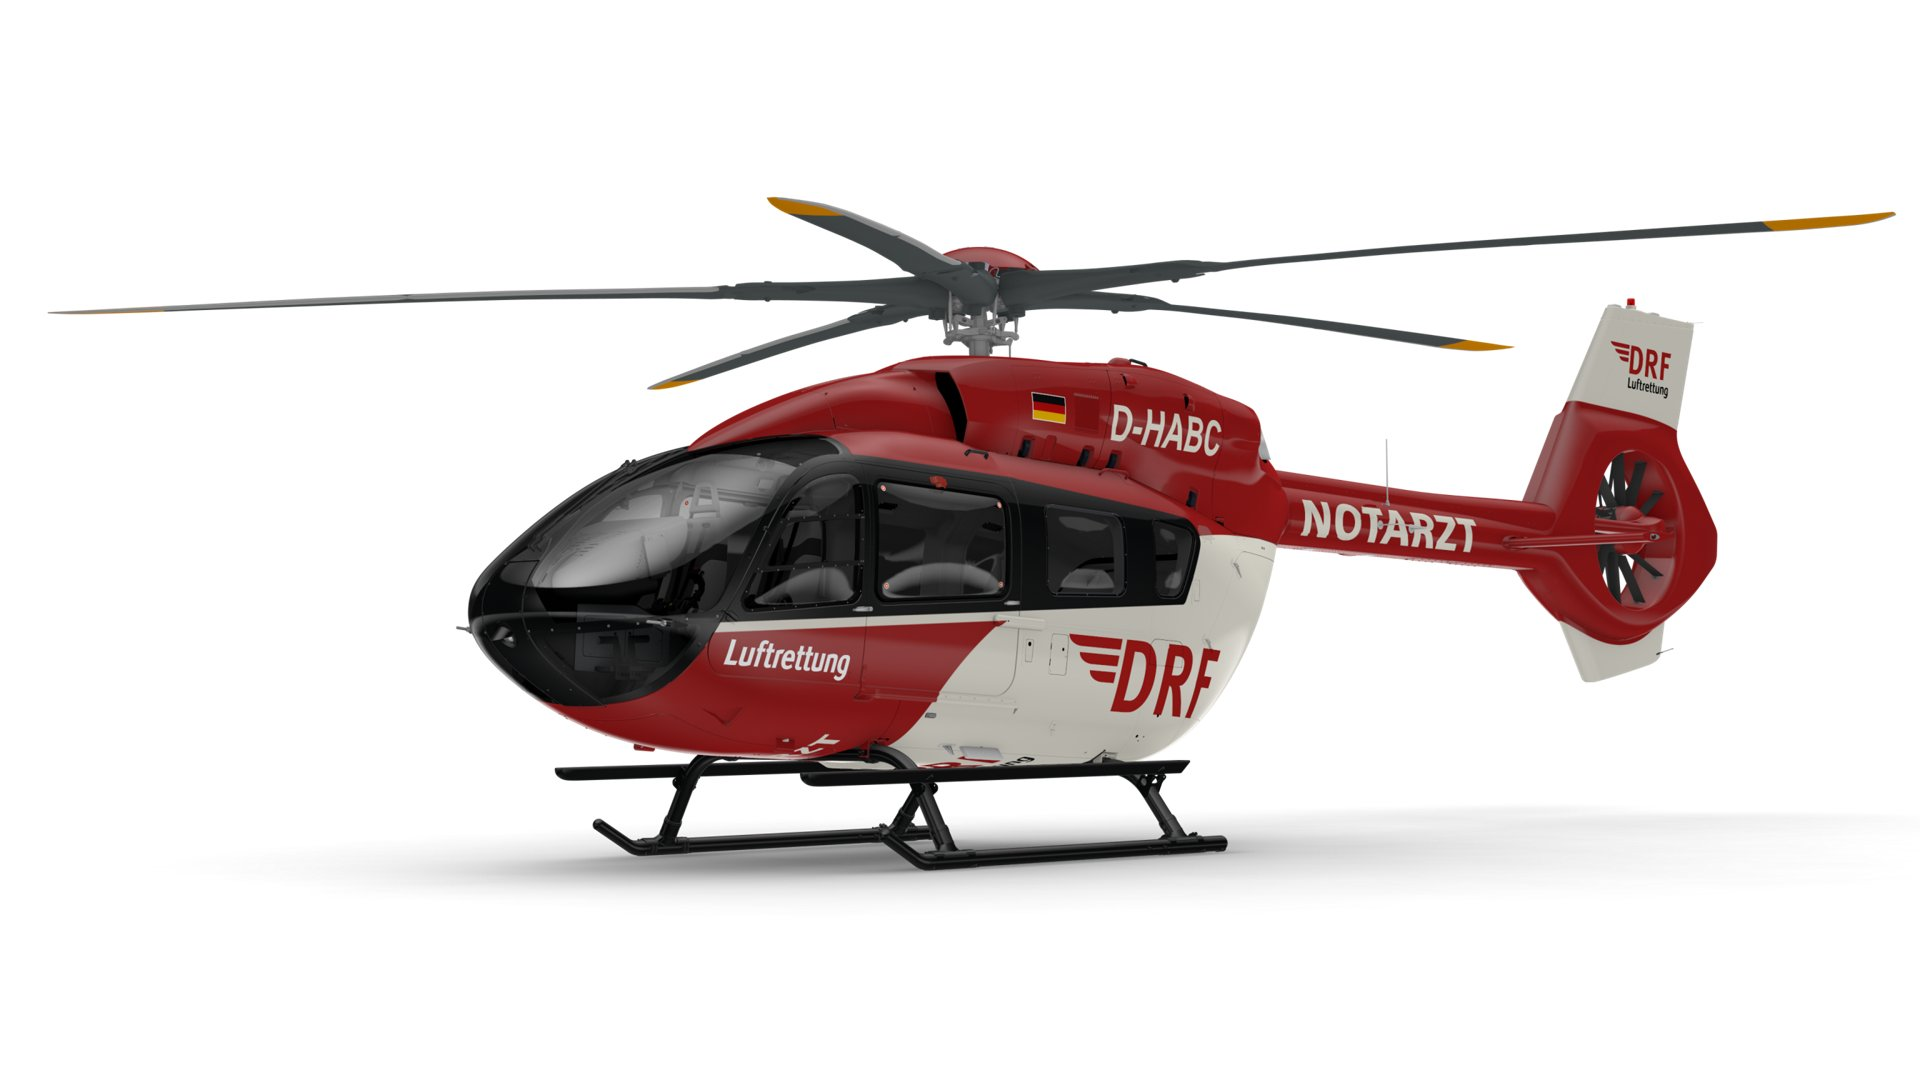 Airbus Helicopters and DRF Luftrettung have signed a contract for the purchase of 15 new H145s, three H135s and the retrofit of their current 20 H145s to the five-bladed version.t